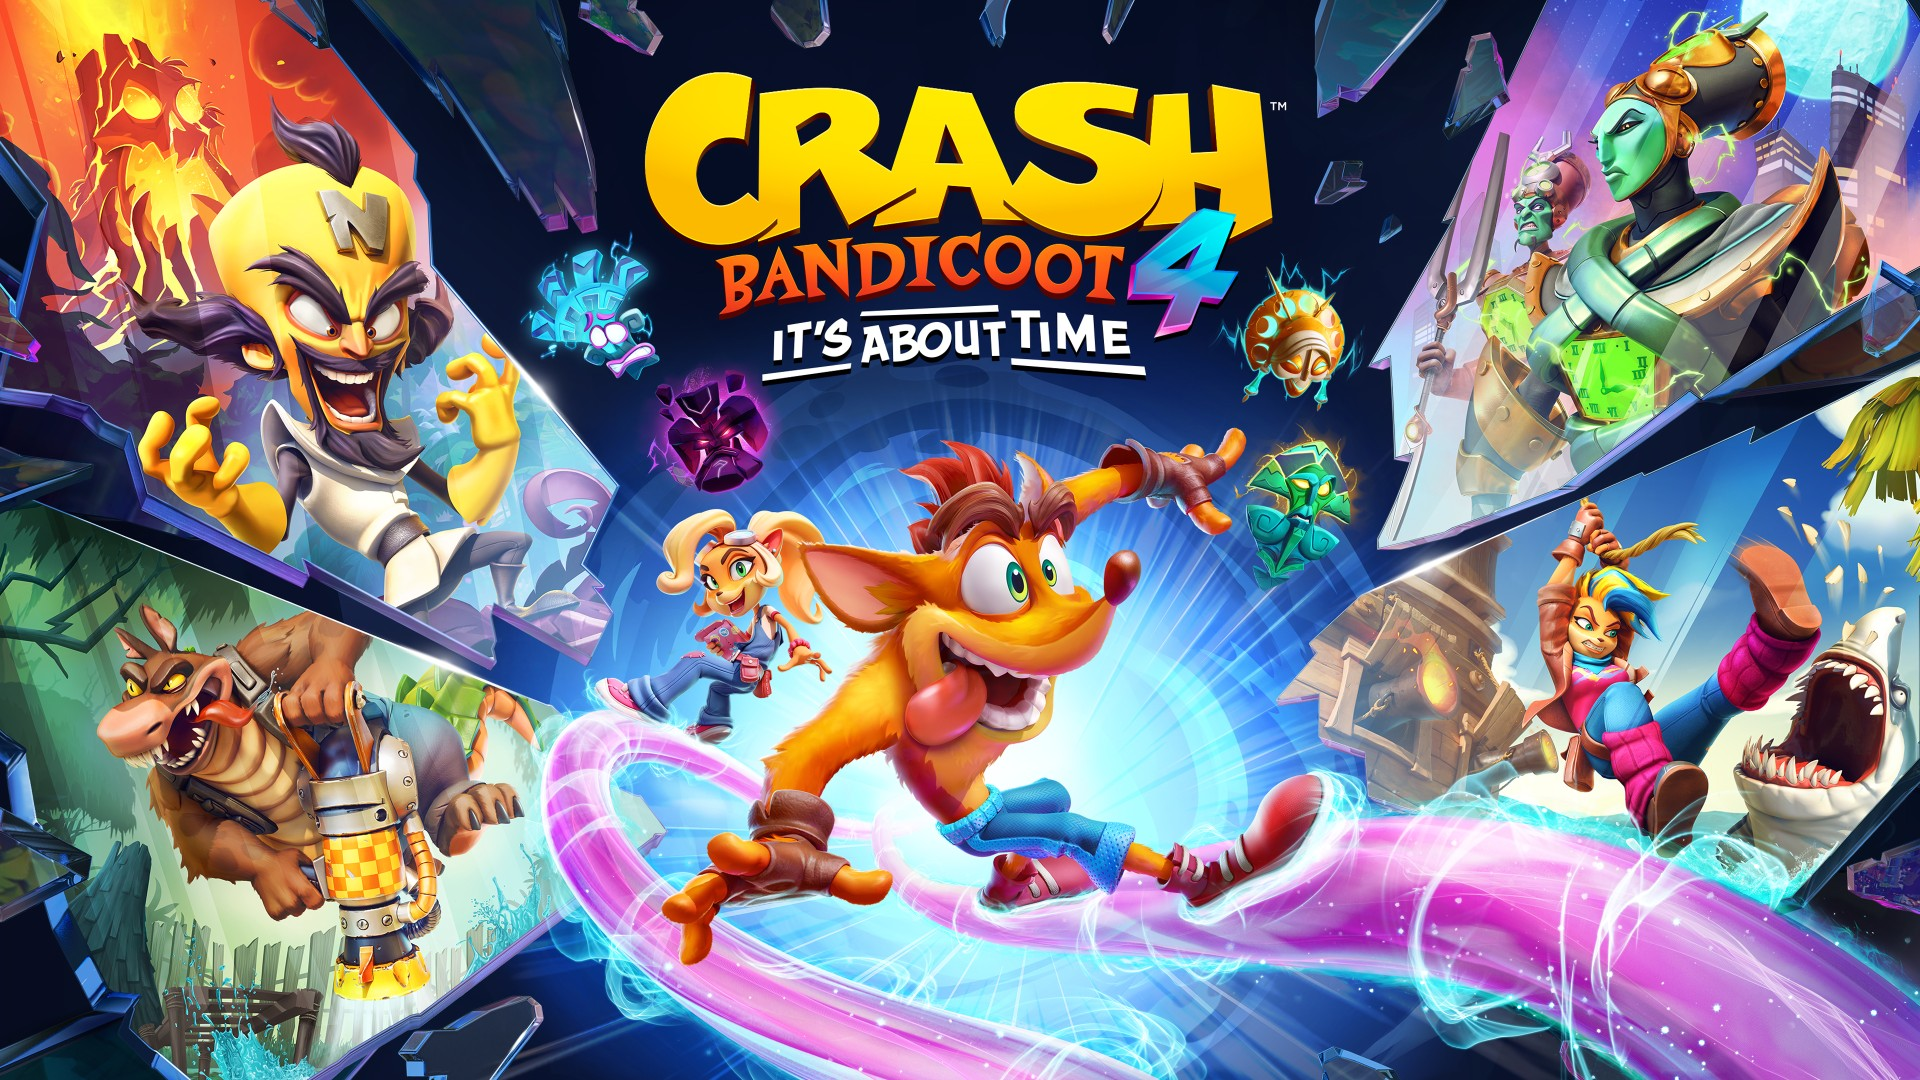 Crash Bandicoot 4: It's Now Available Now on Xbox One